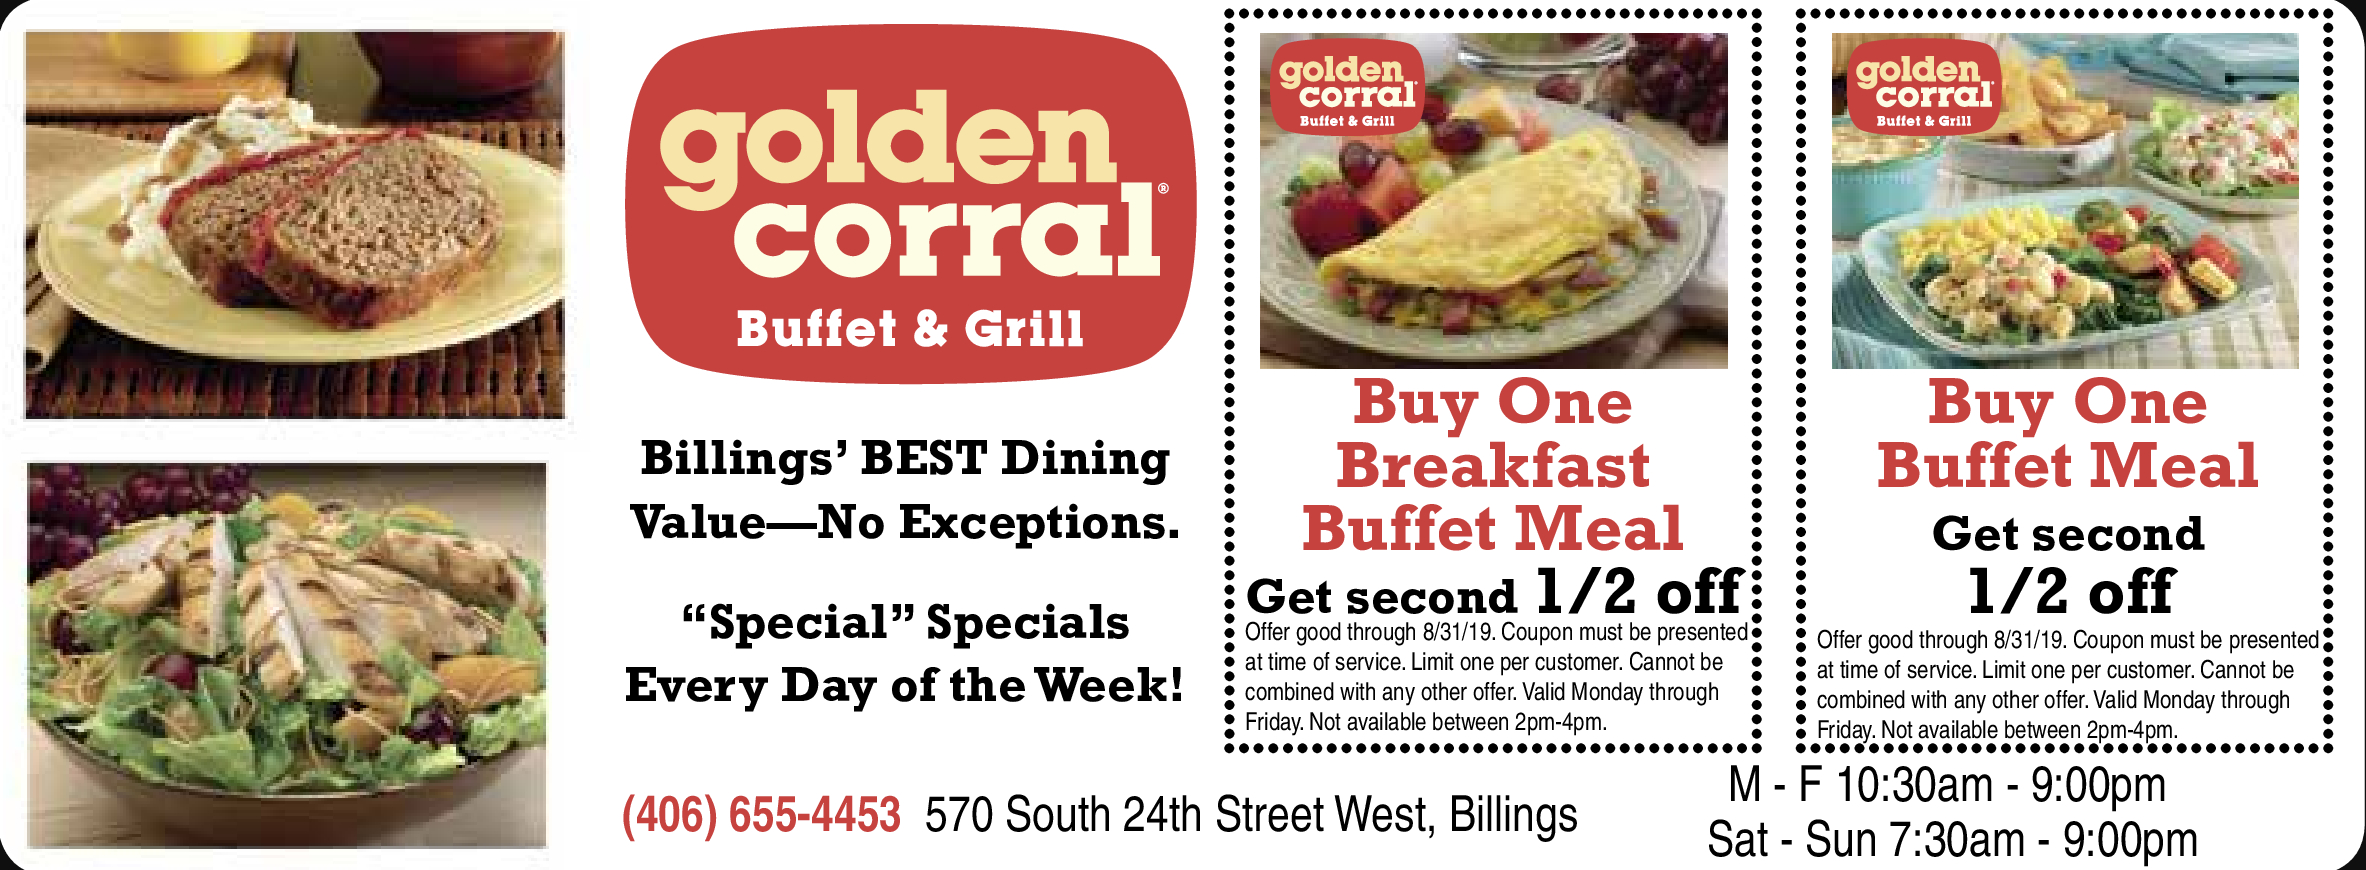 Golden Corral Buffet & Grill Coupons - Golden Corral Coupons Buy One Get One Free Printable